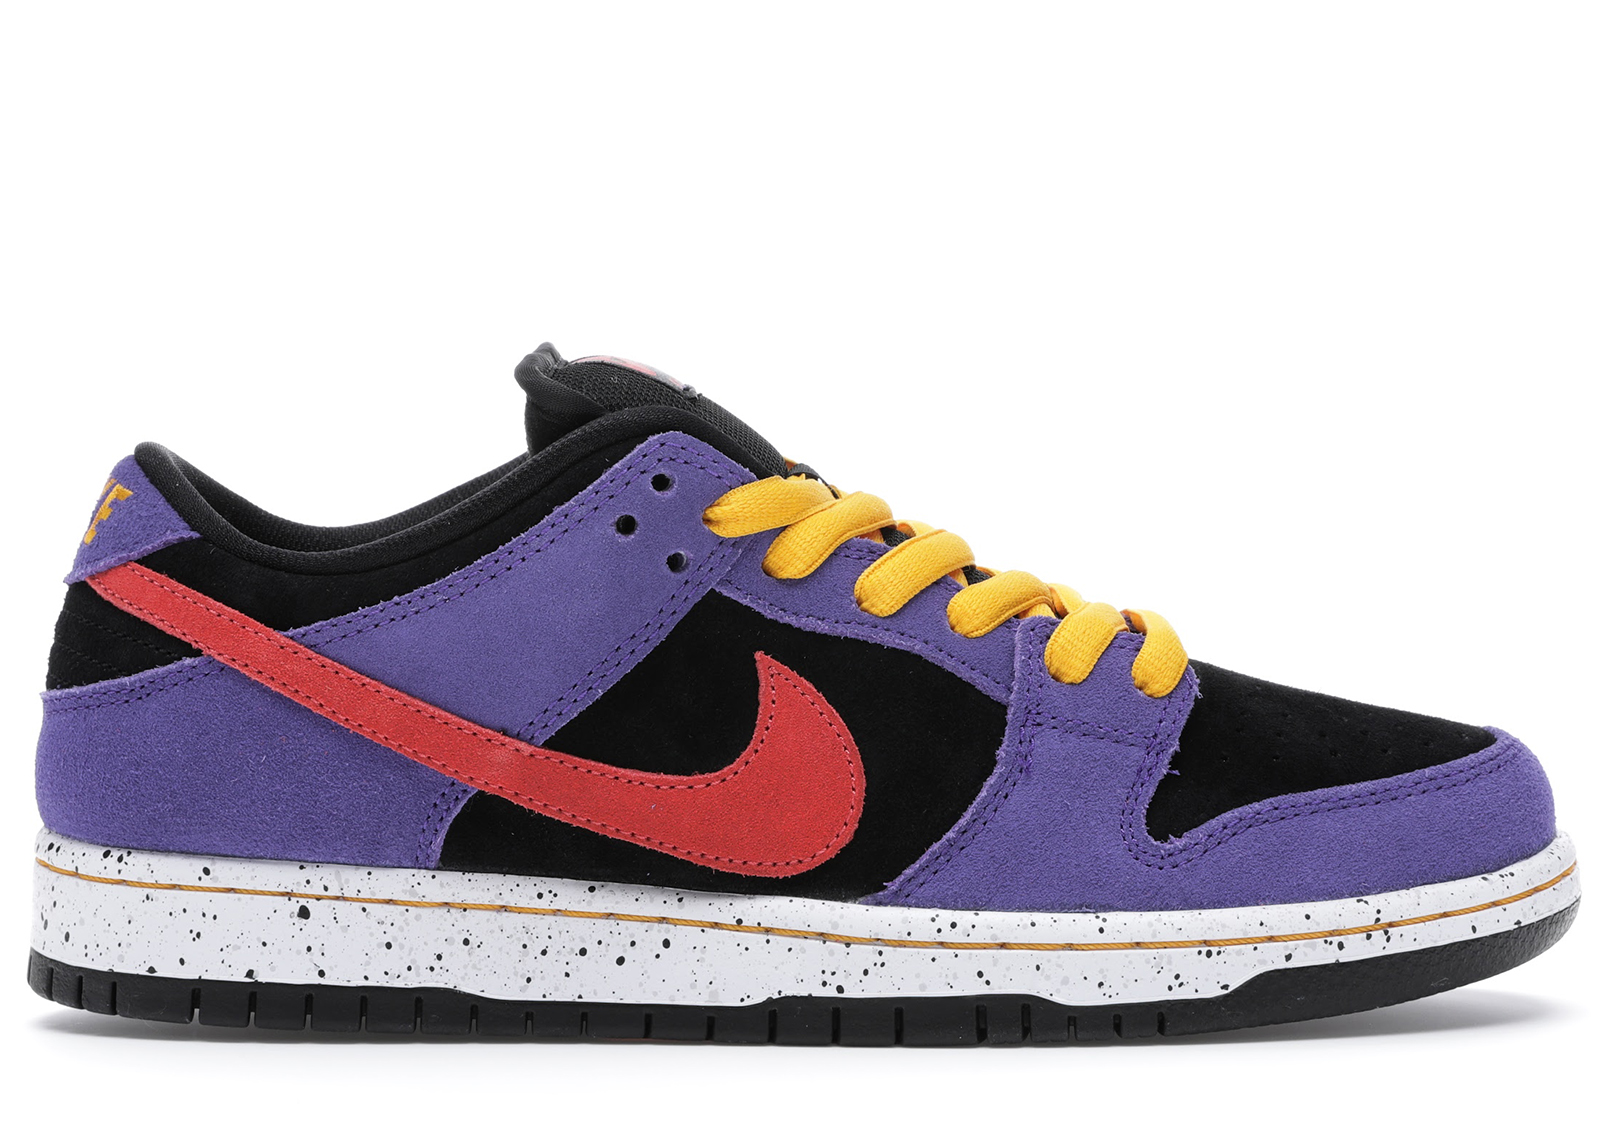 Nike SB SB Dunk Low Shoes - Total Sold